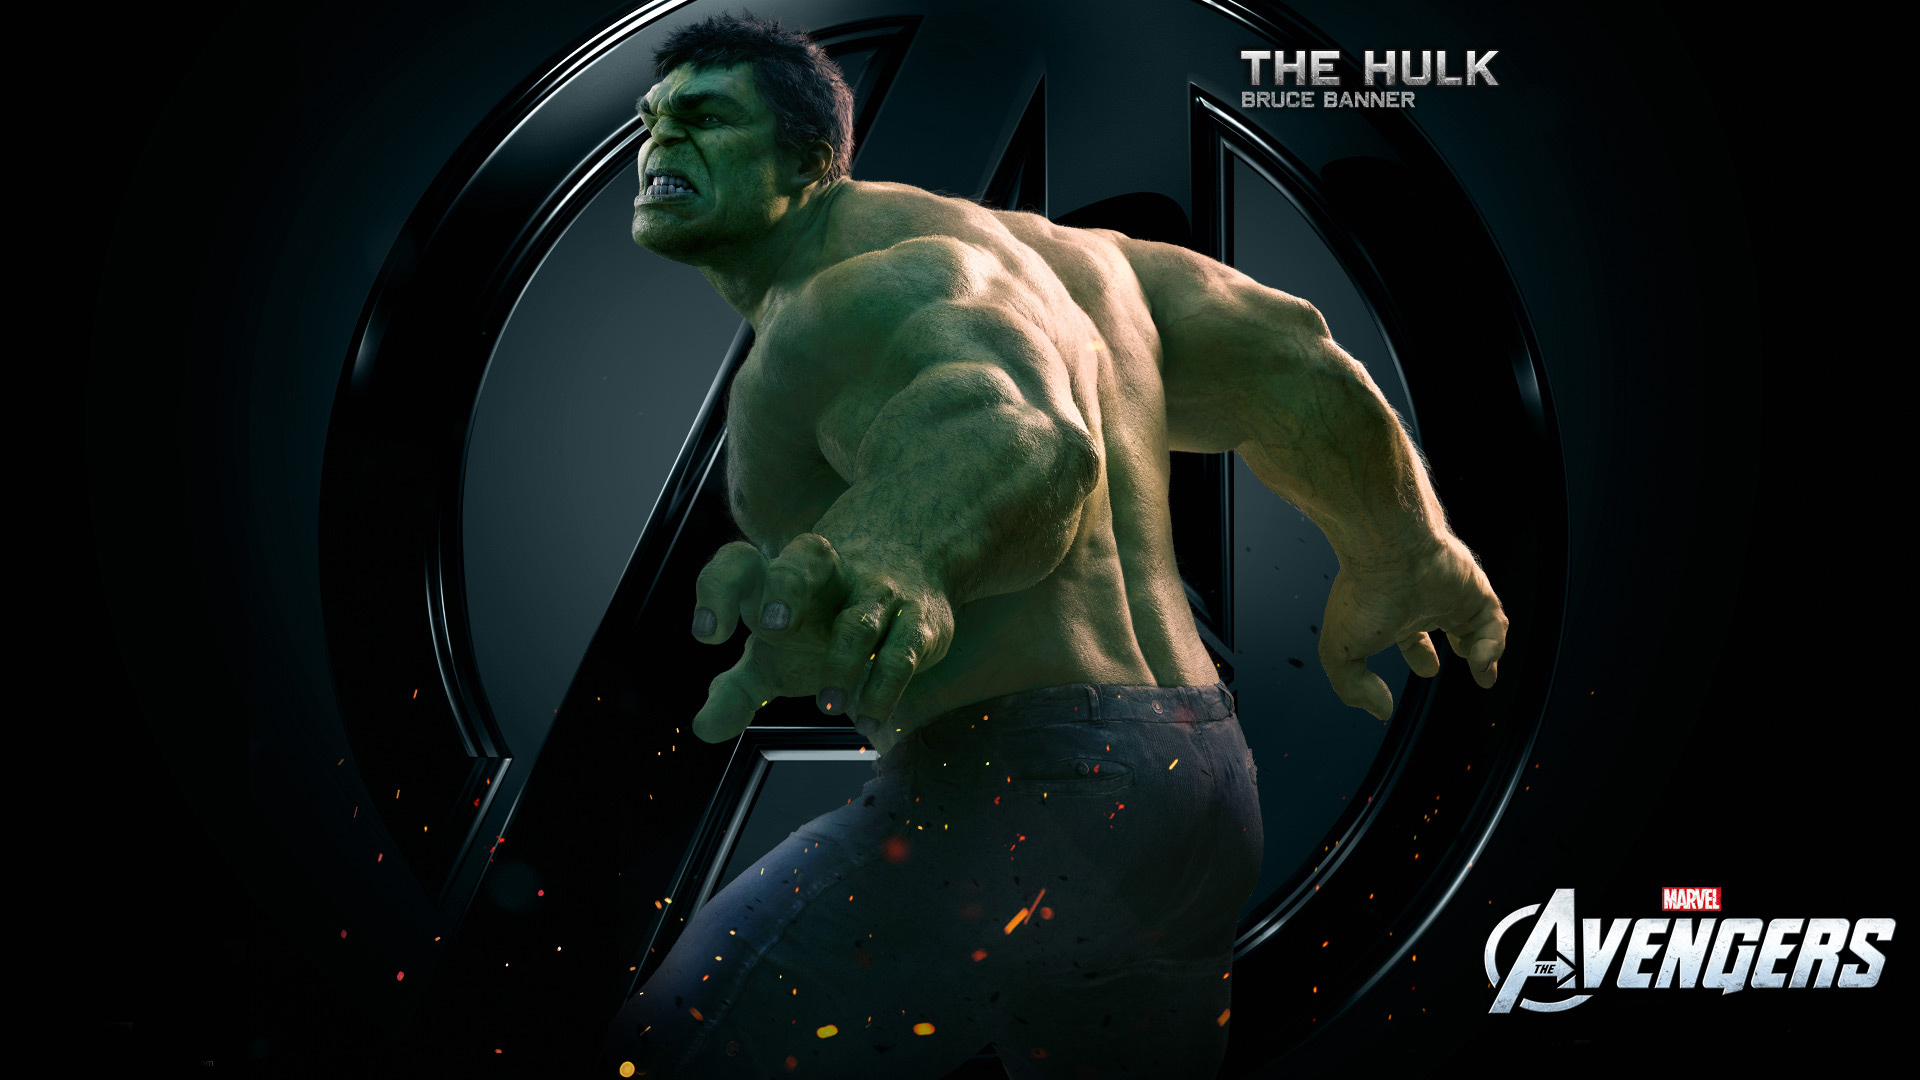 Hulk 4k Wallpapers For Your Desktop Or Mobile Screen Free And Easy